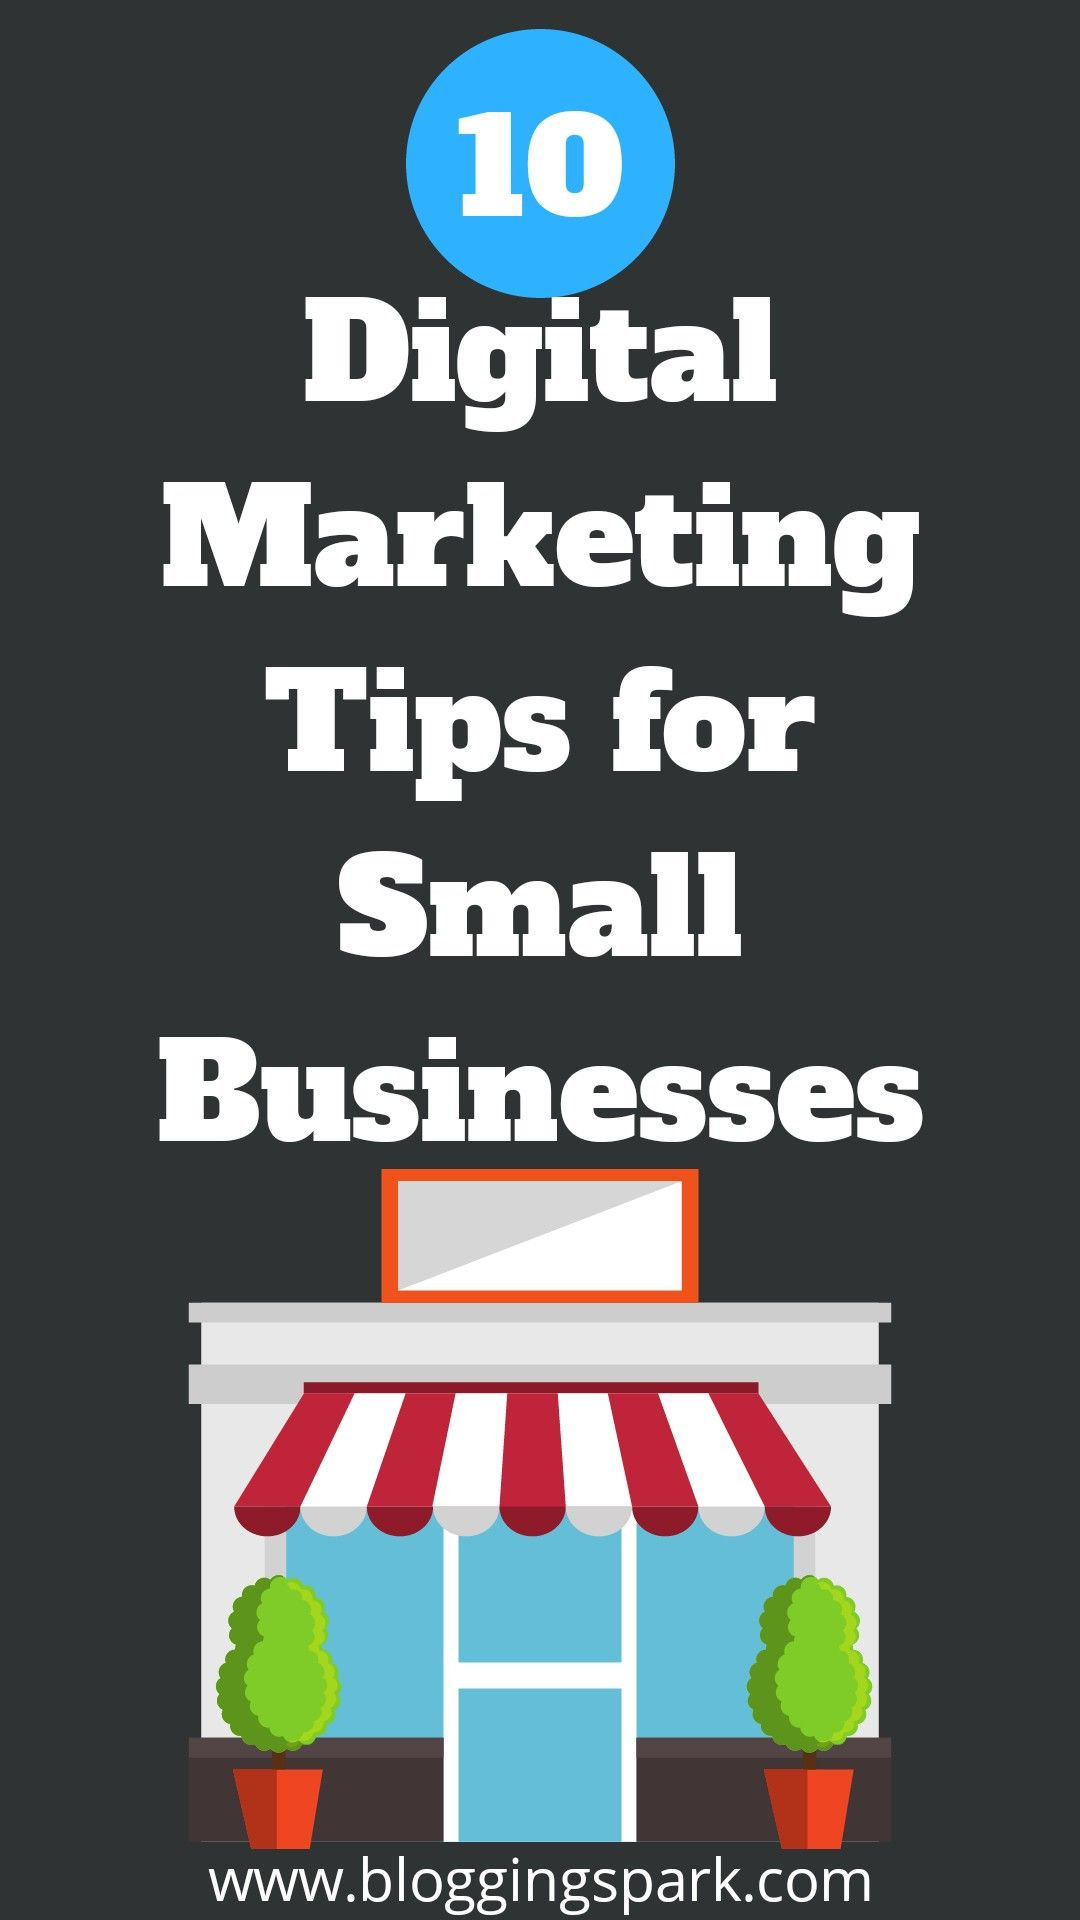 Digital marketing tips for small local businesses to get more sales.